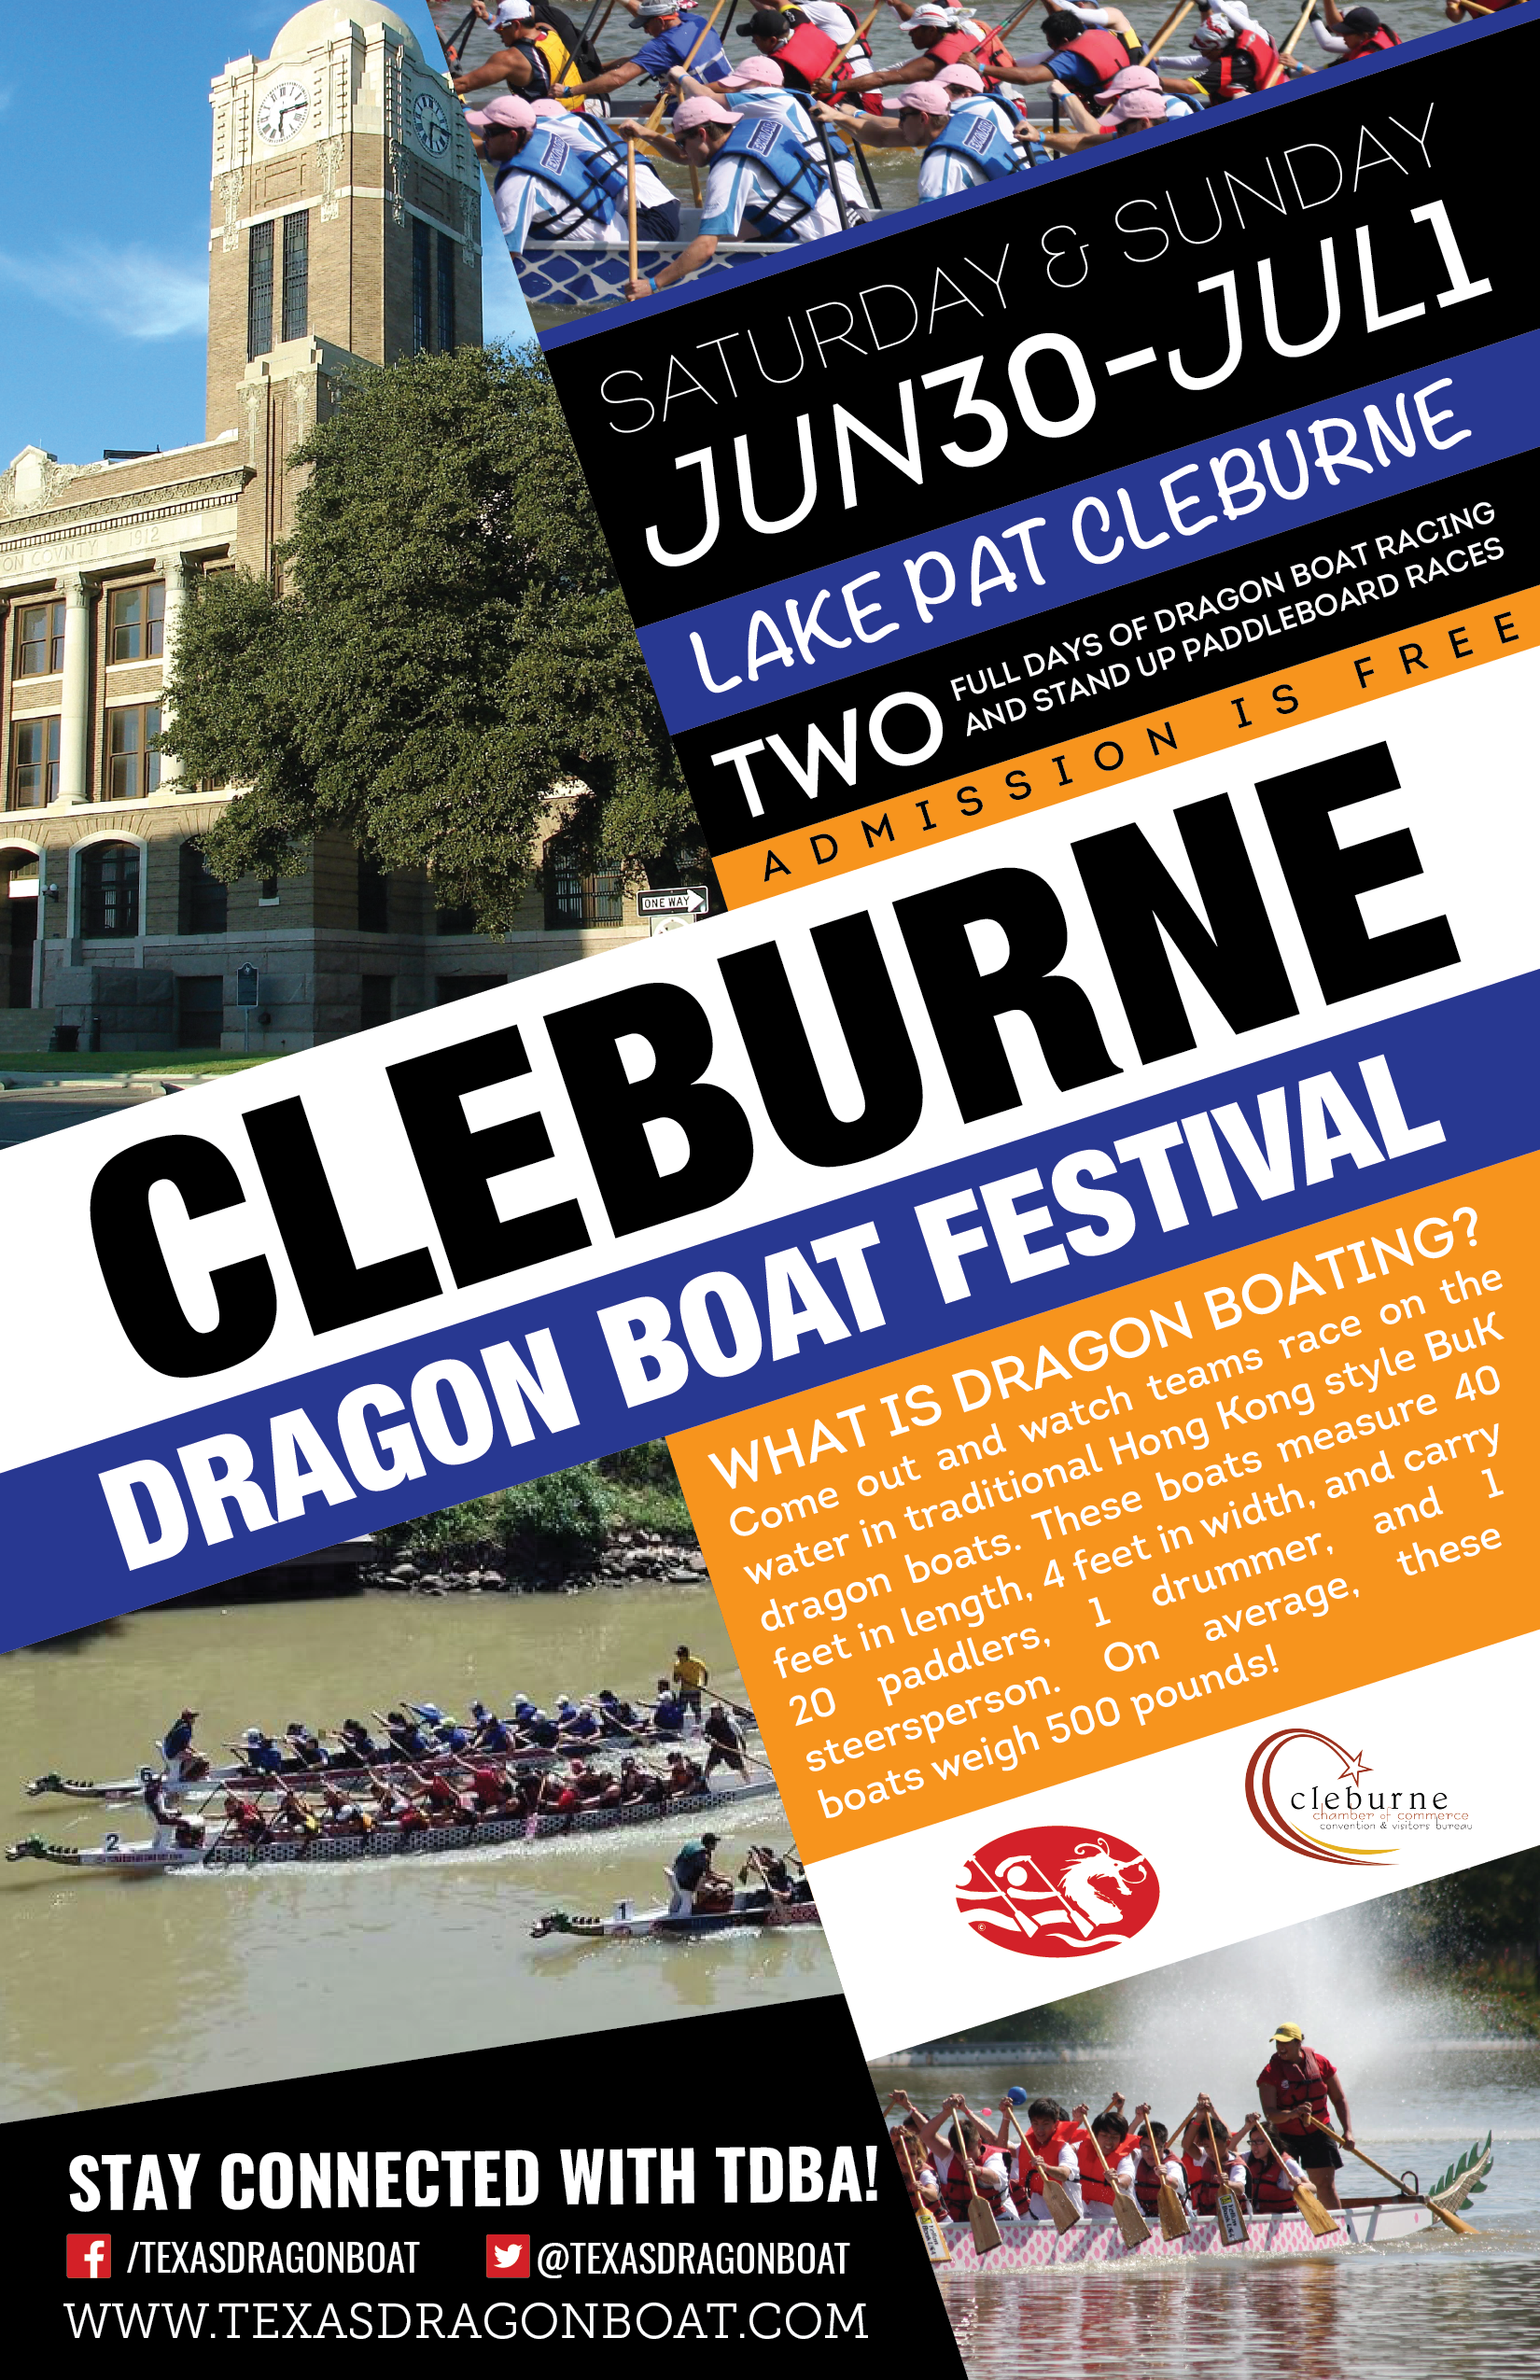 Dragon Boat Festival, Racing, Lake Pat Cleburne, Paddle Board Races